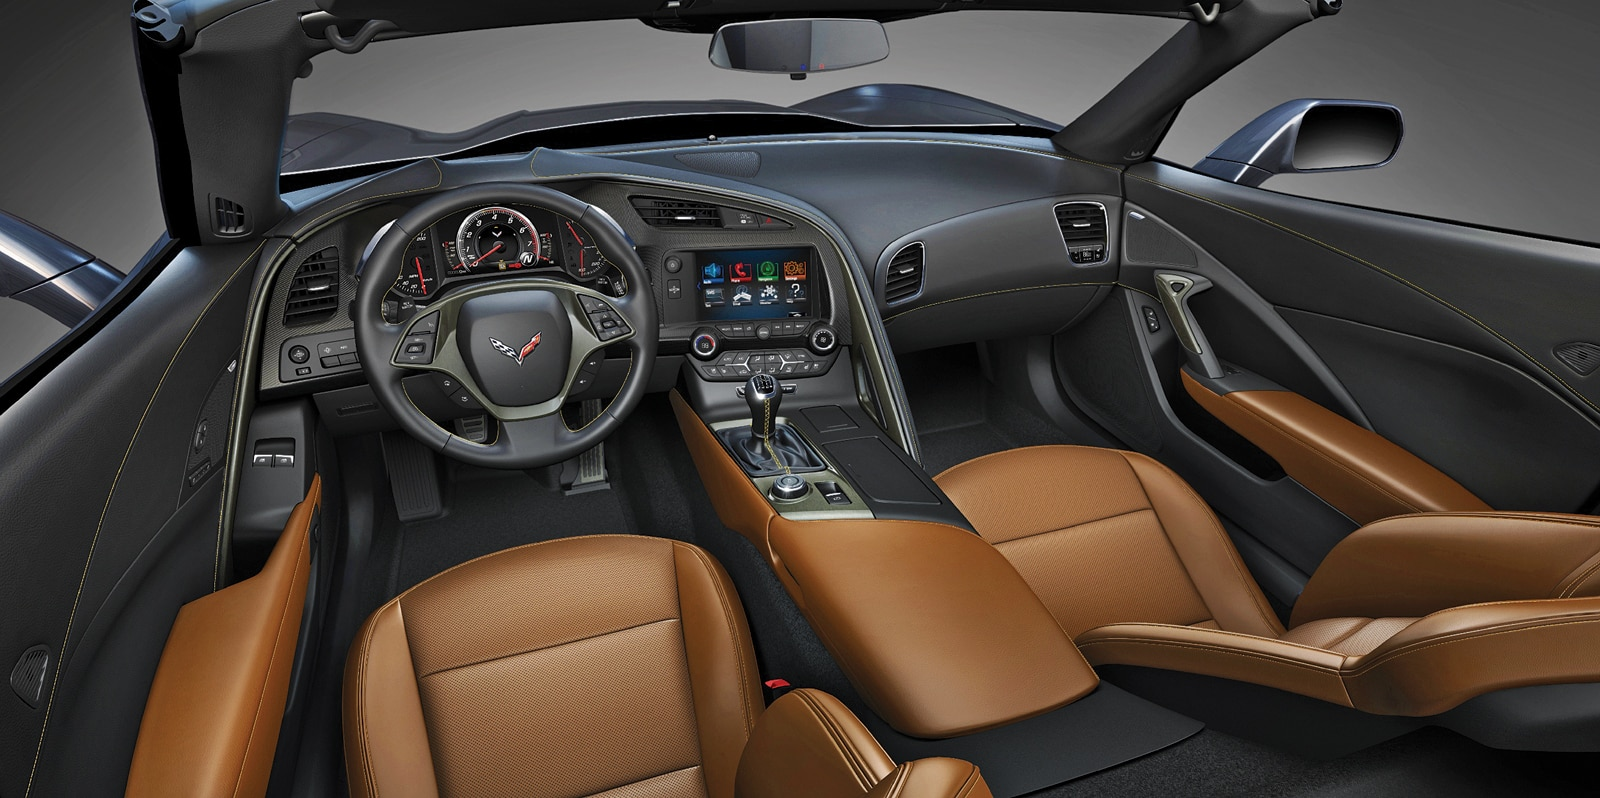 2014 Chevy Corvette C7 Stingray Interior Dash View